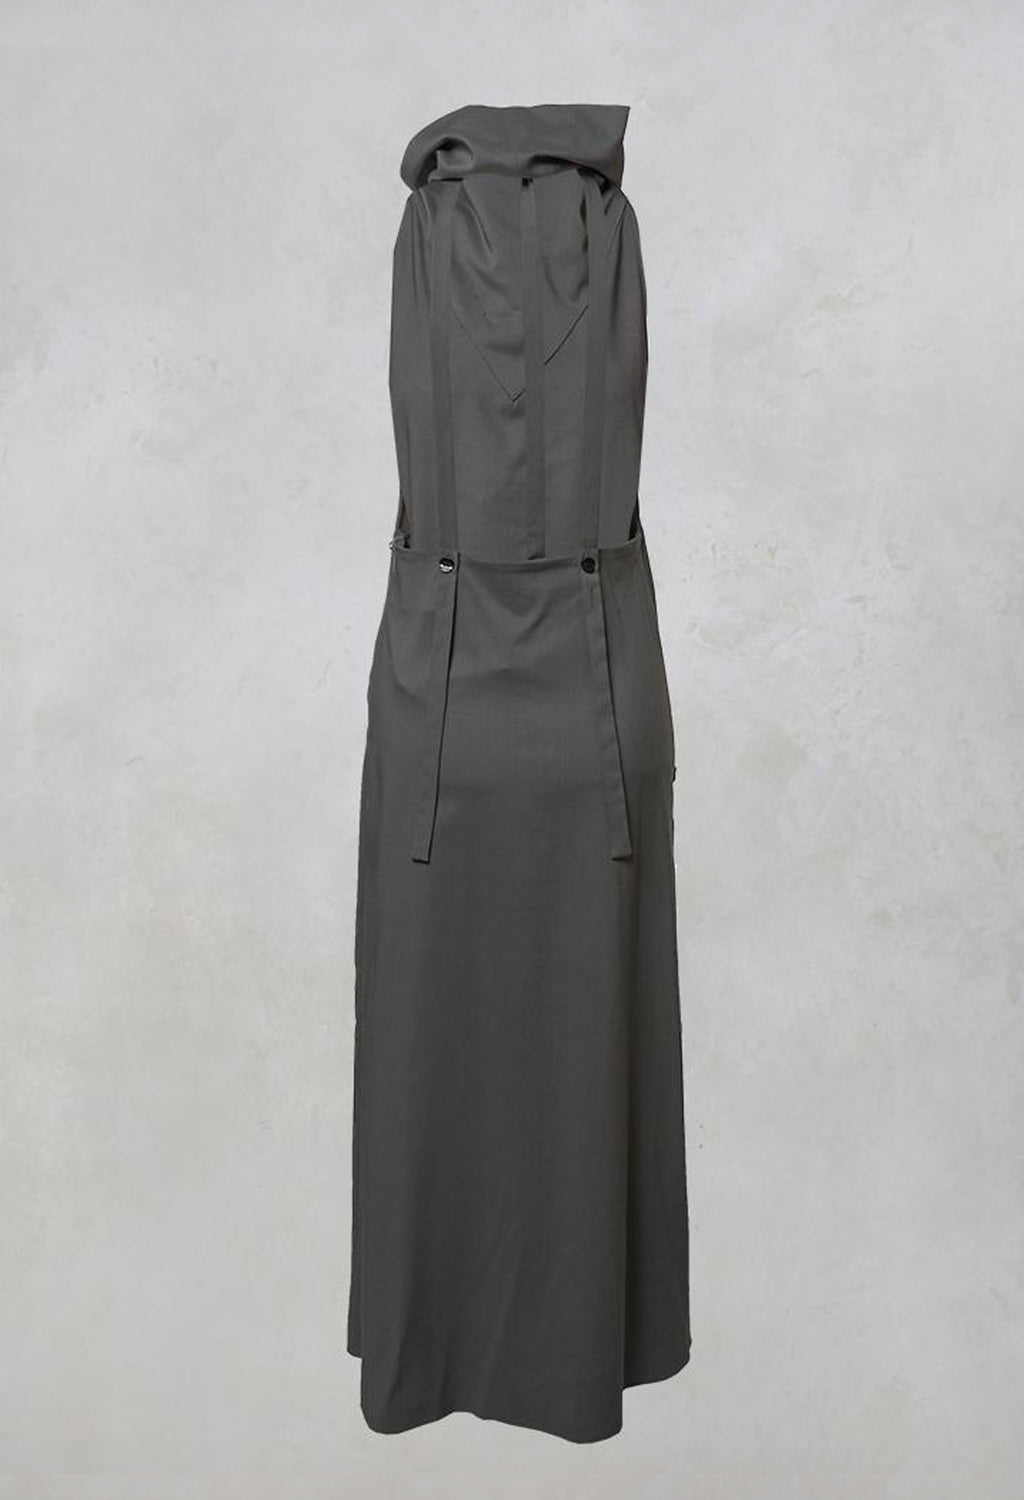 Long Backless Woven Dress with Collar in Stone